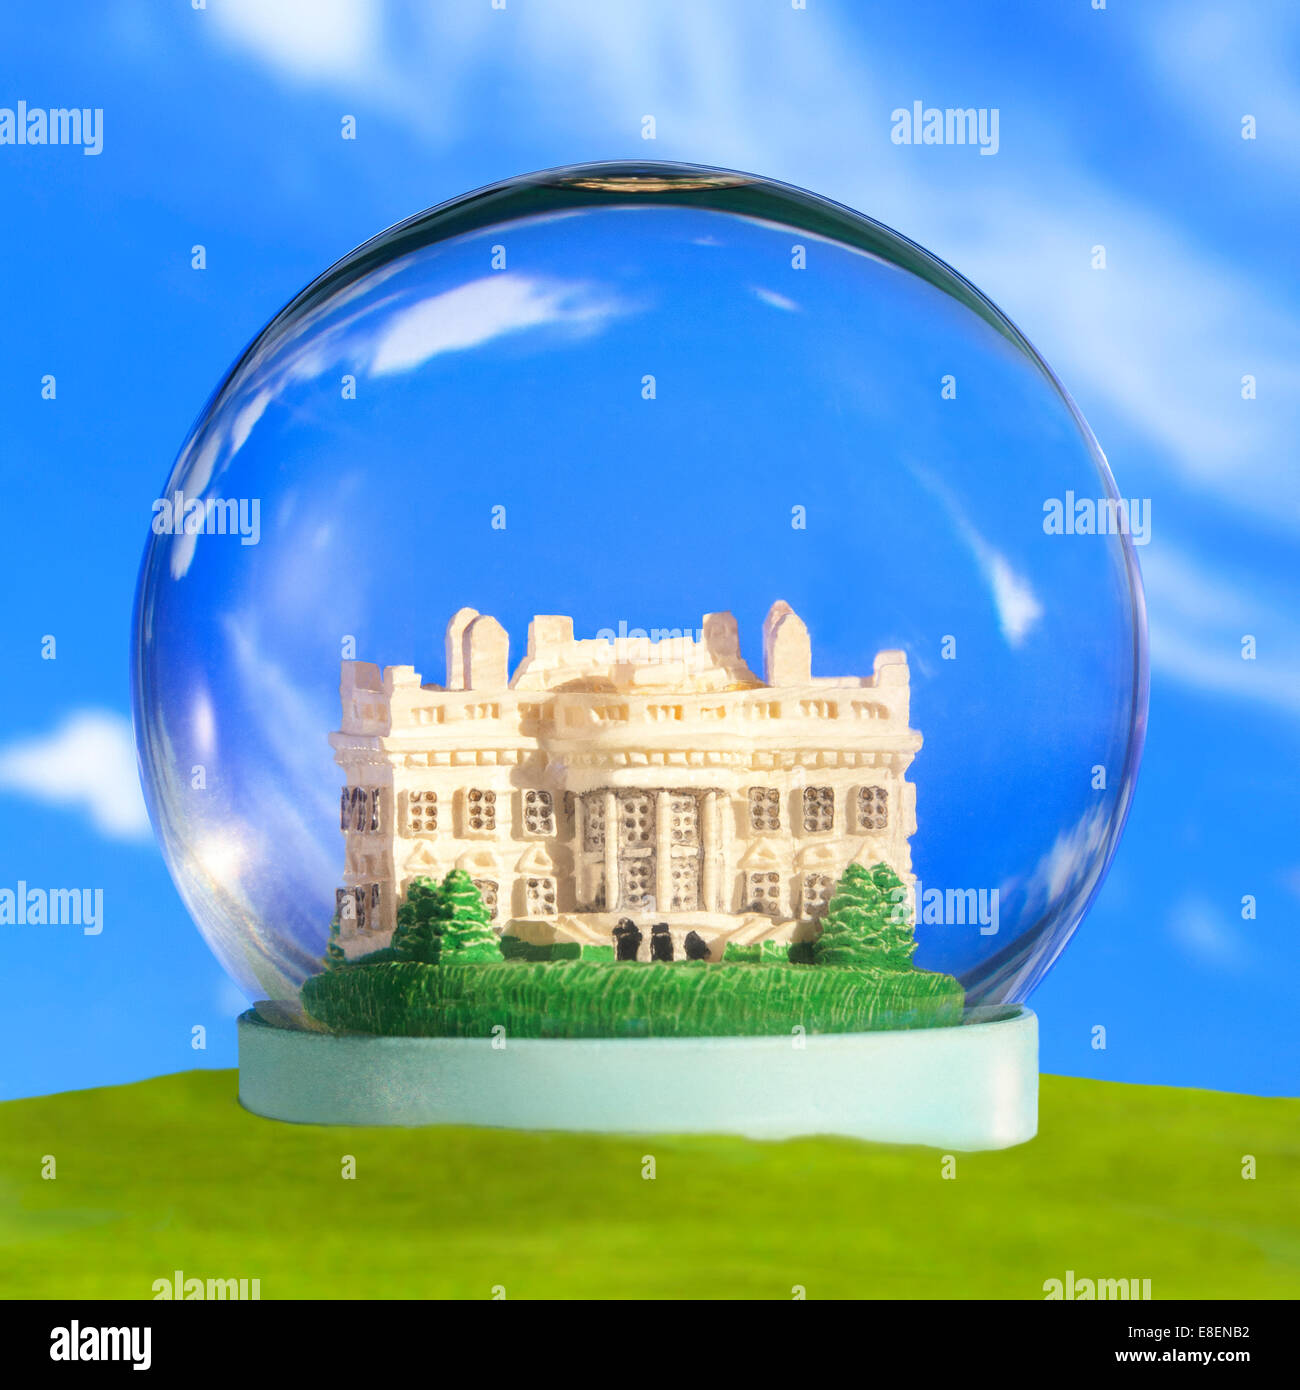 A Snow Globe Snow Dome Glass Bubble with the Washington DC White House. Concept safety security protection isolation - Stock Image